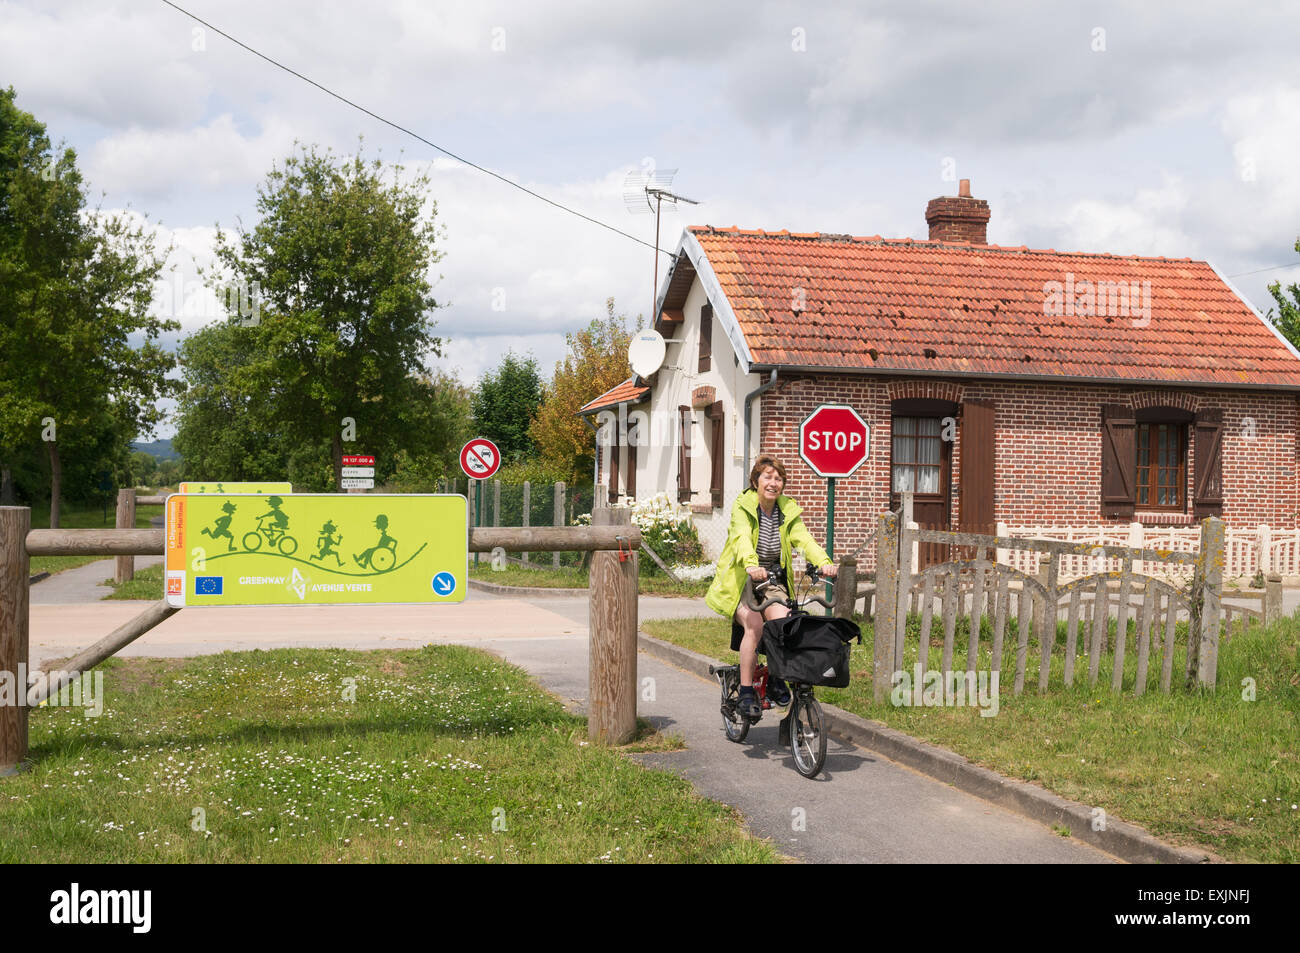 Smiling female cyclist riding a Brompton bike on the Greenway or Avenue Verte between Dieppe and Paris, France Stock Photo